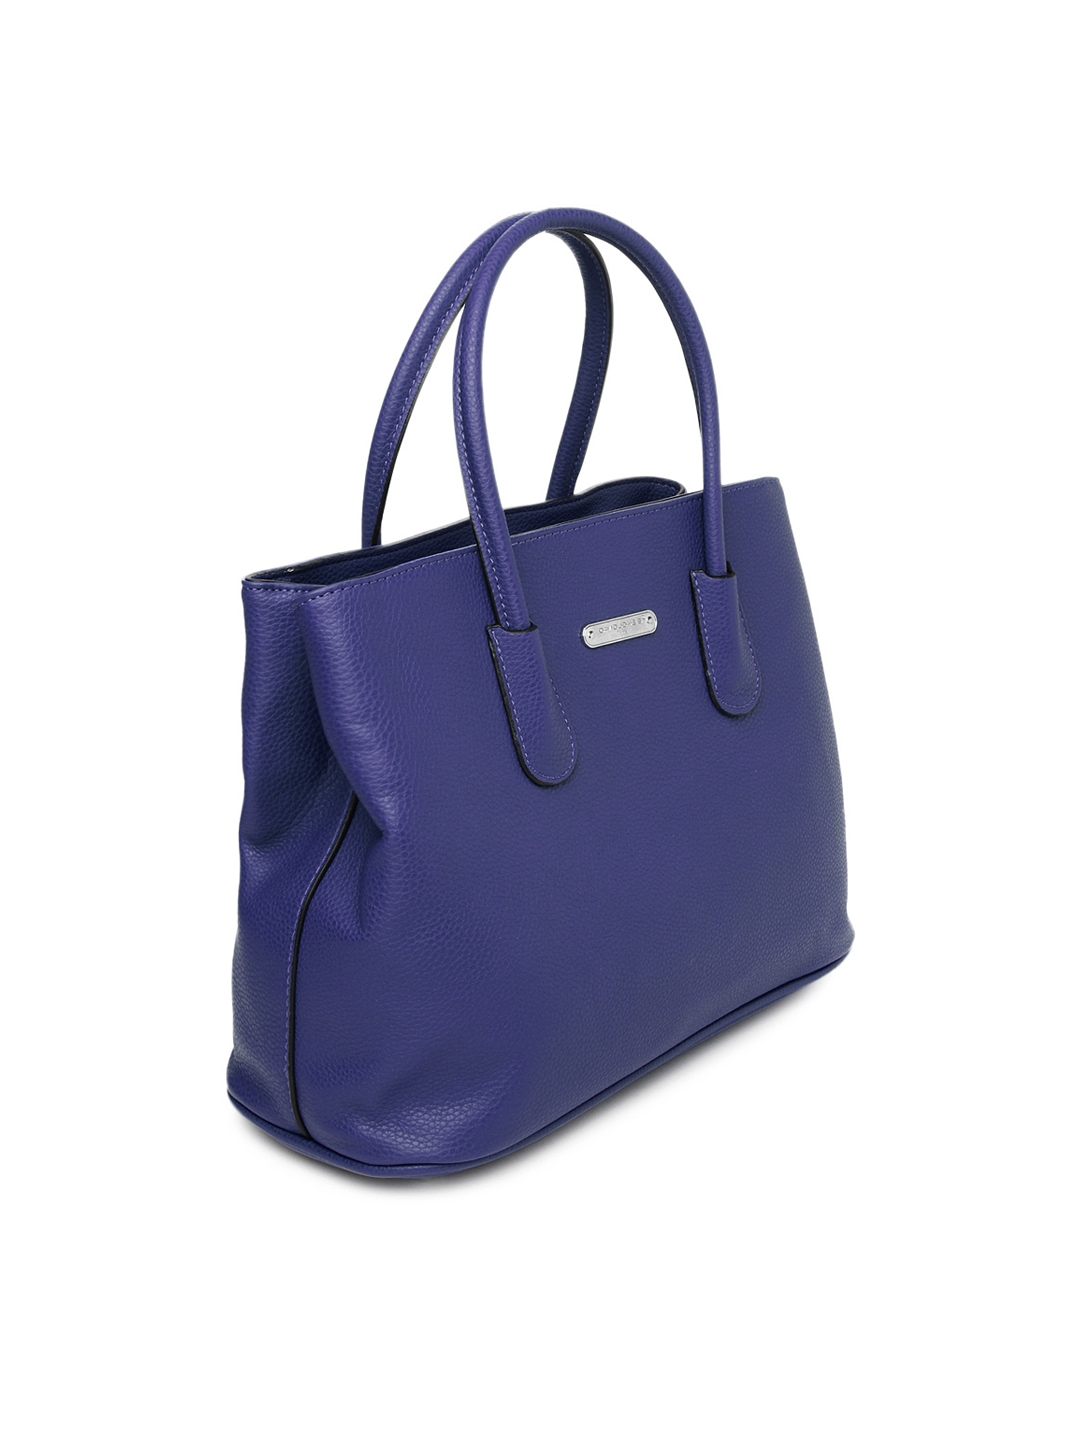 ... More Handbags by David Jones More Purple Handbags More Handbags